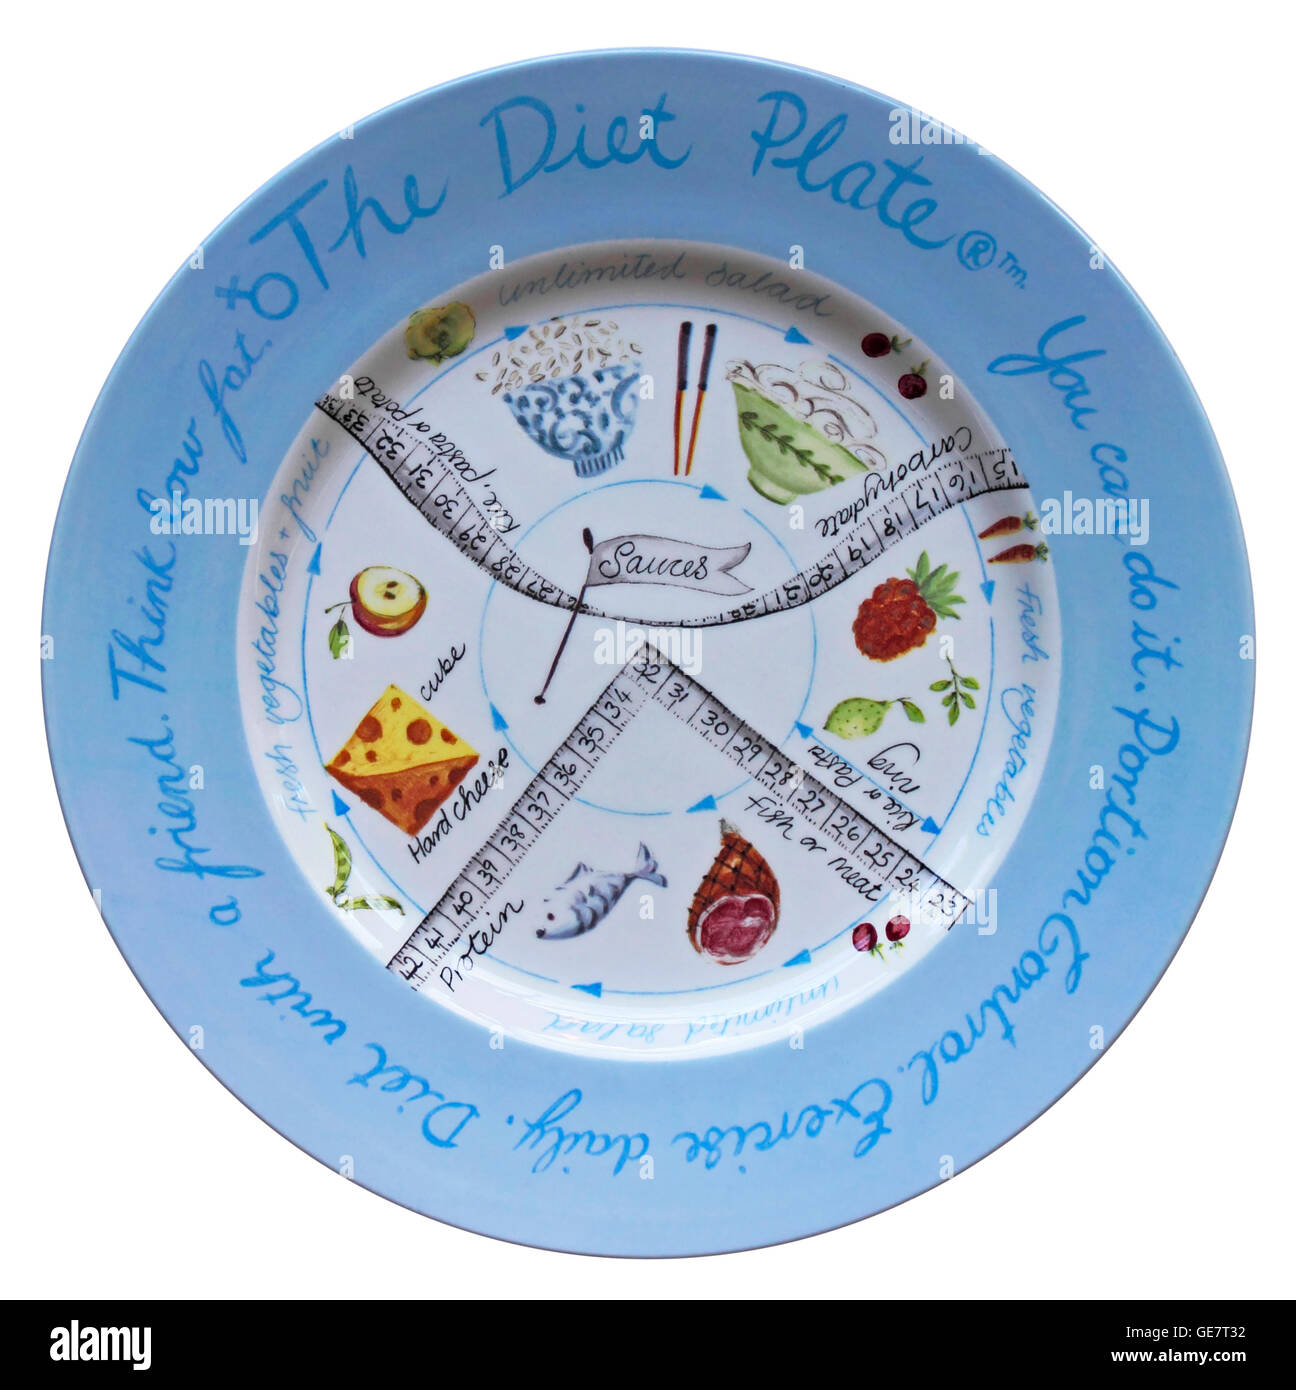 The Diet Plate showing measured portions of food types - Stock Image